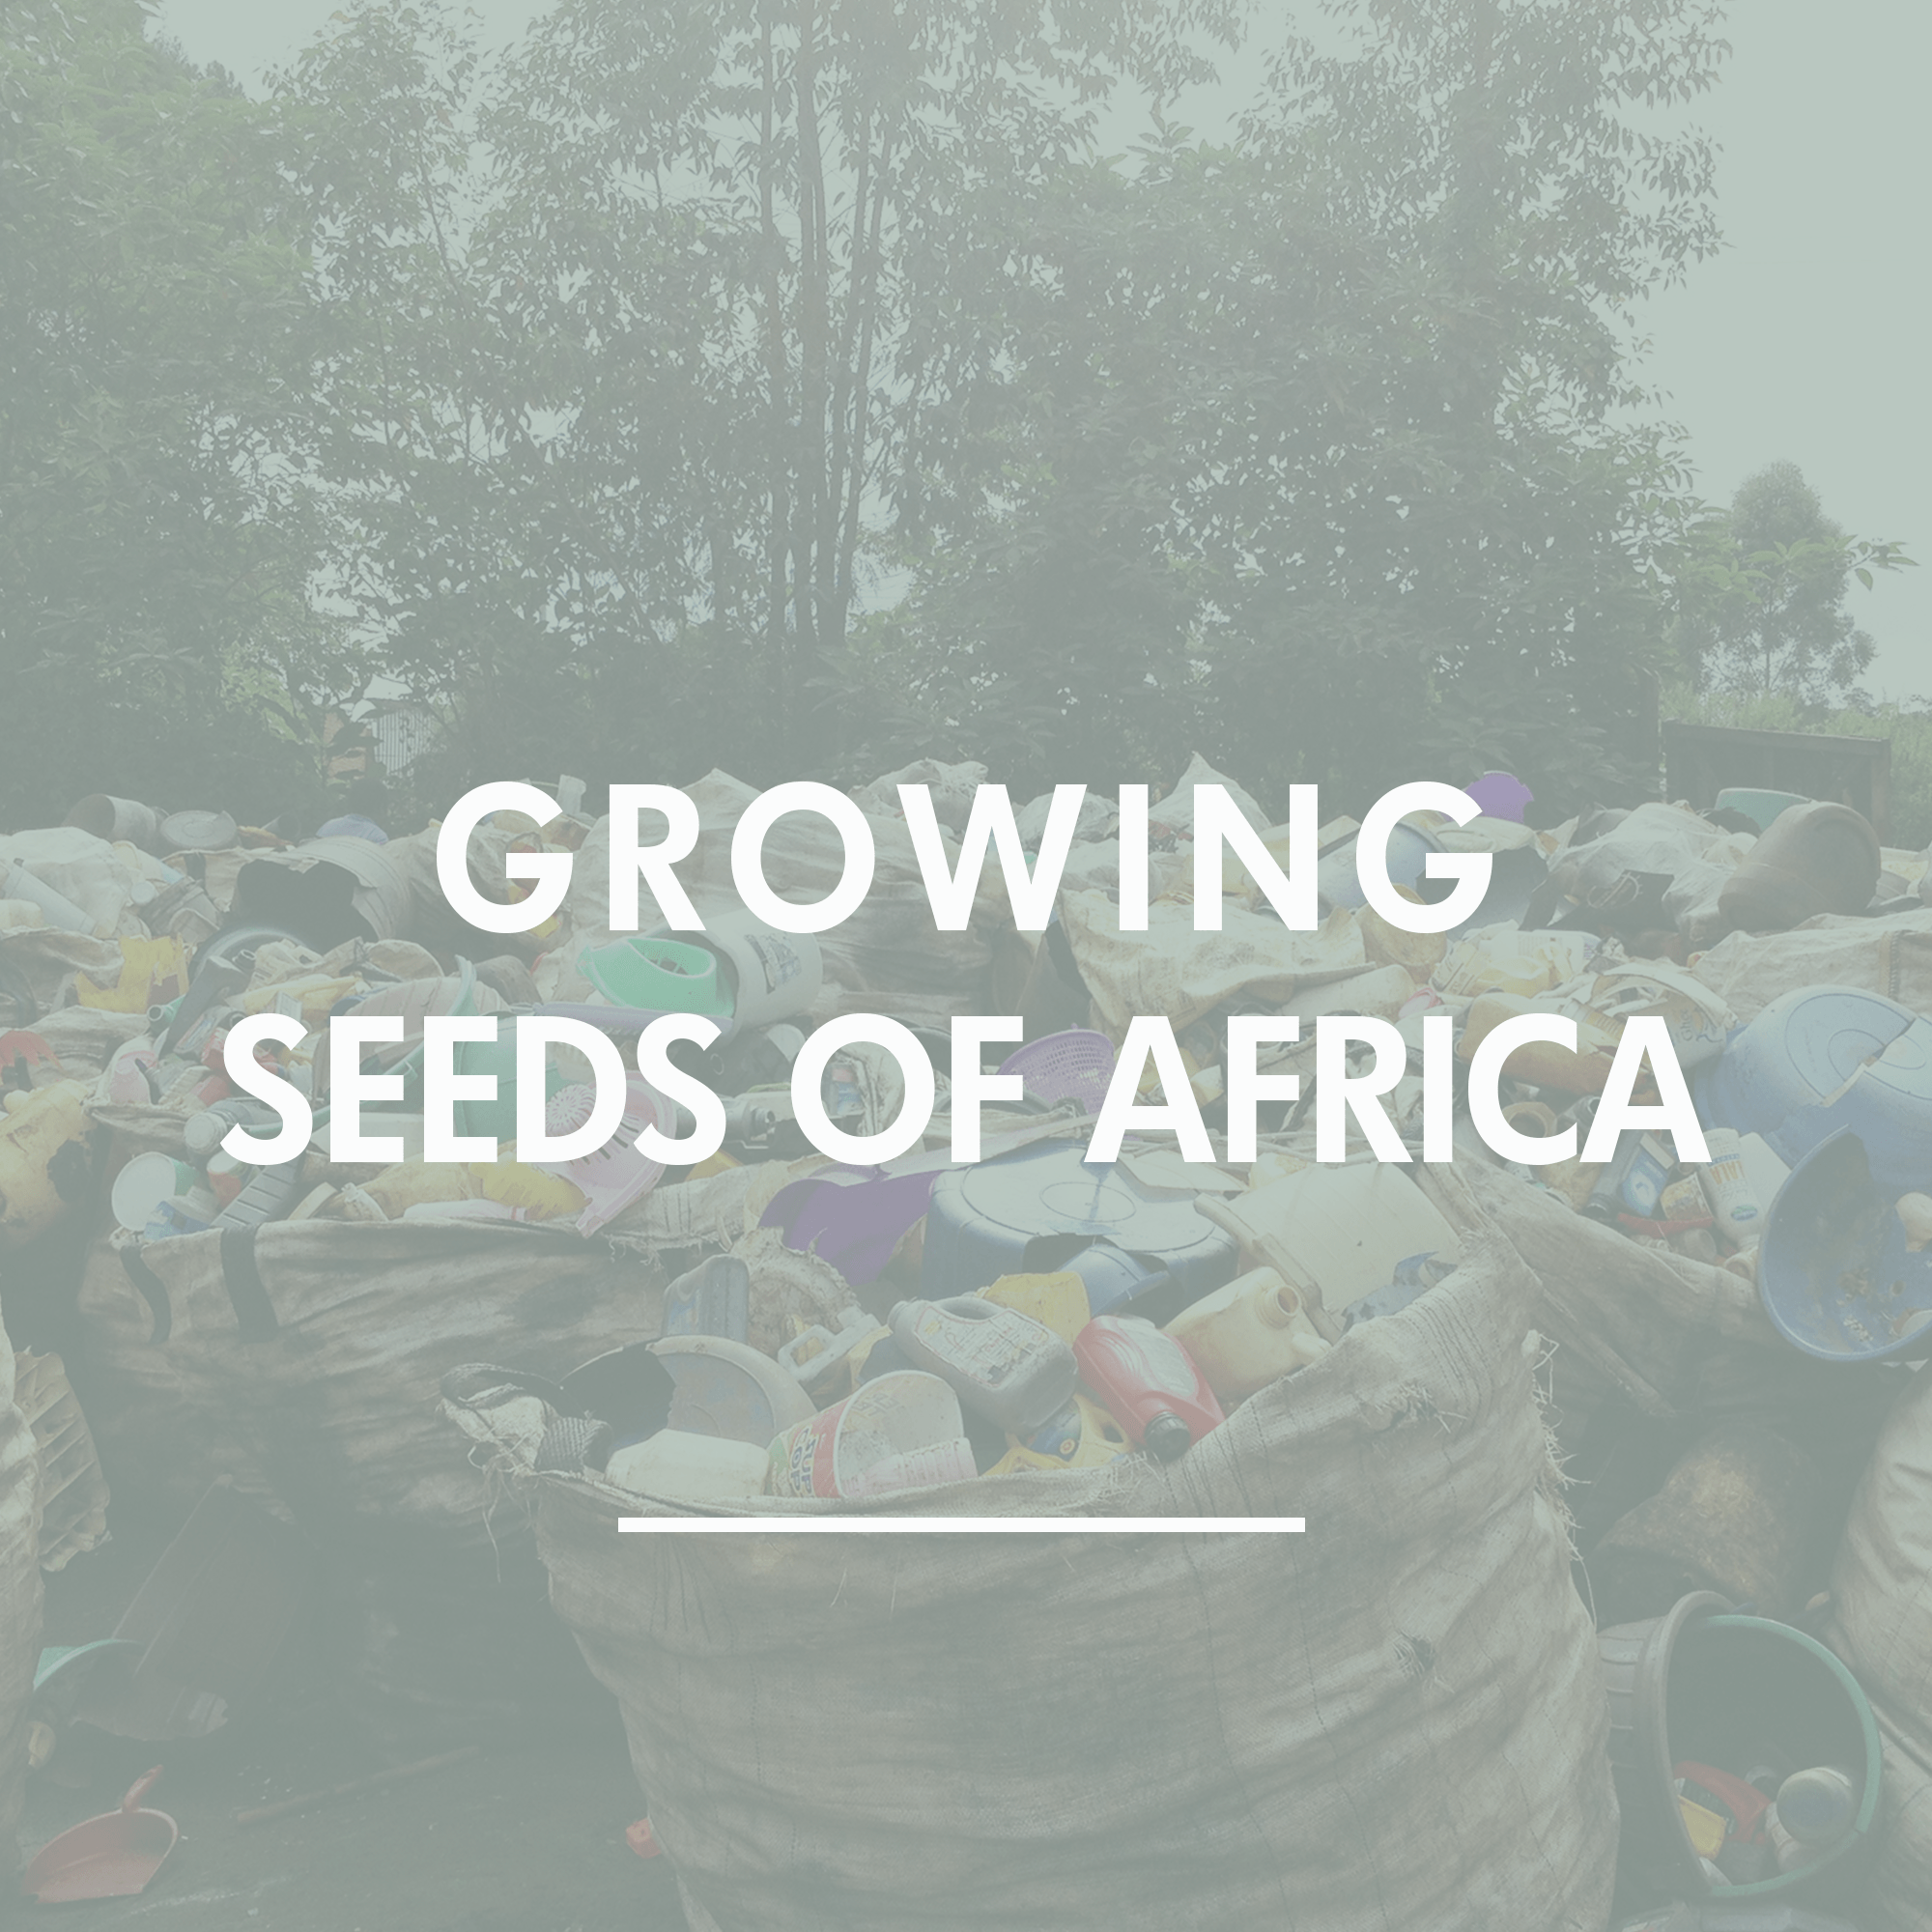 Growing Seeds of Africa